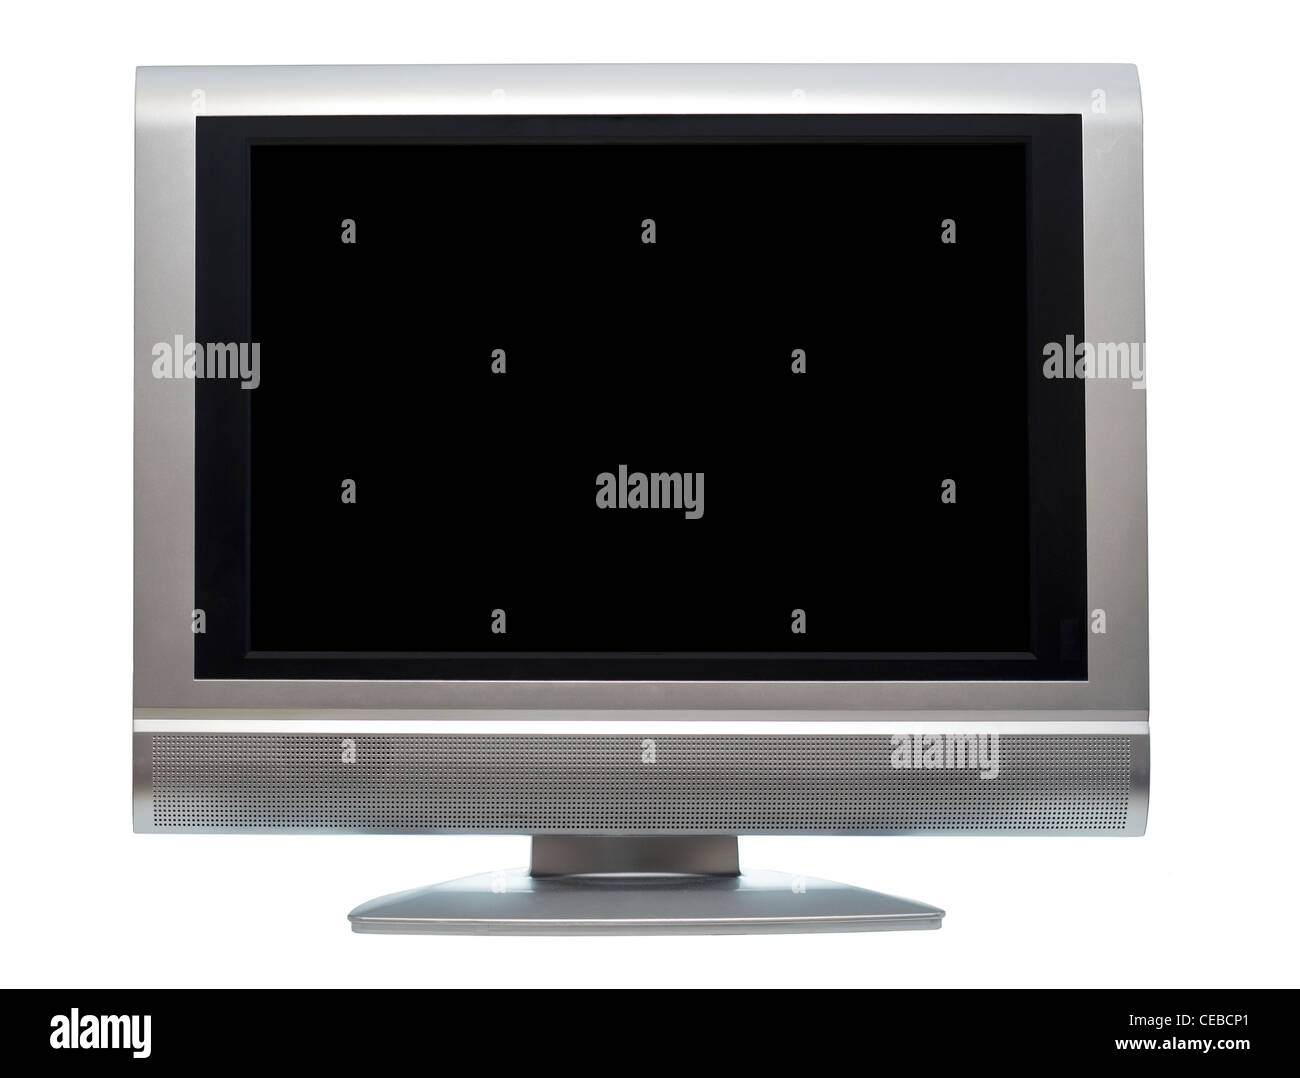 lcd stockfotos lcd bilder alamy. Black Bedroom Furniture Sets. Home Design Ideas